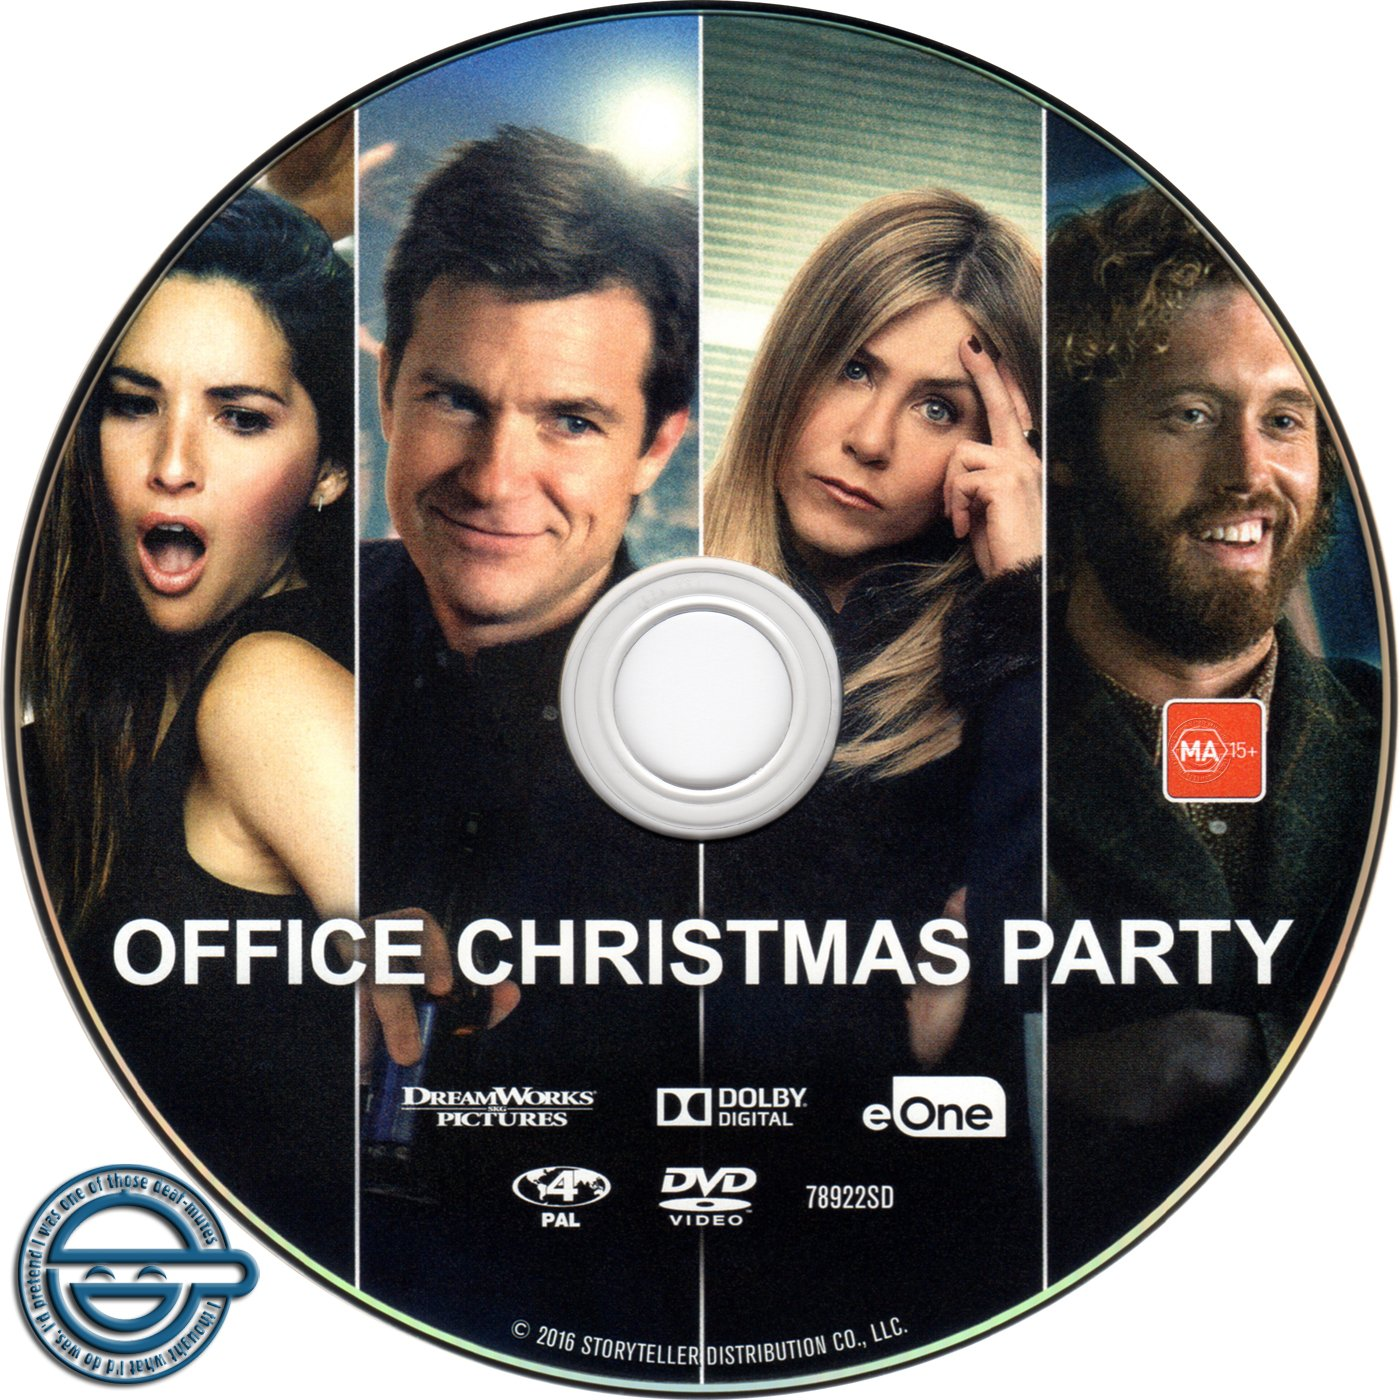 Office Christmas Party (2016) R4 DVD Label | Dvd Covers and Labels